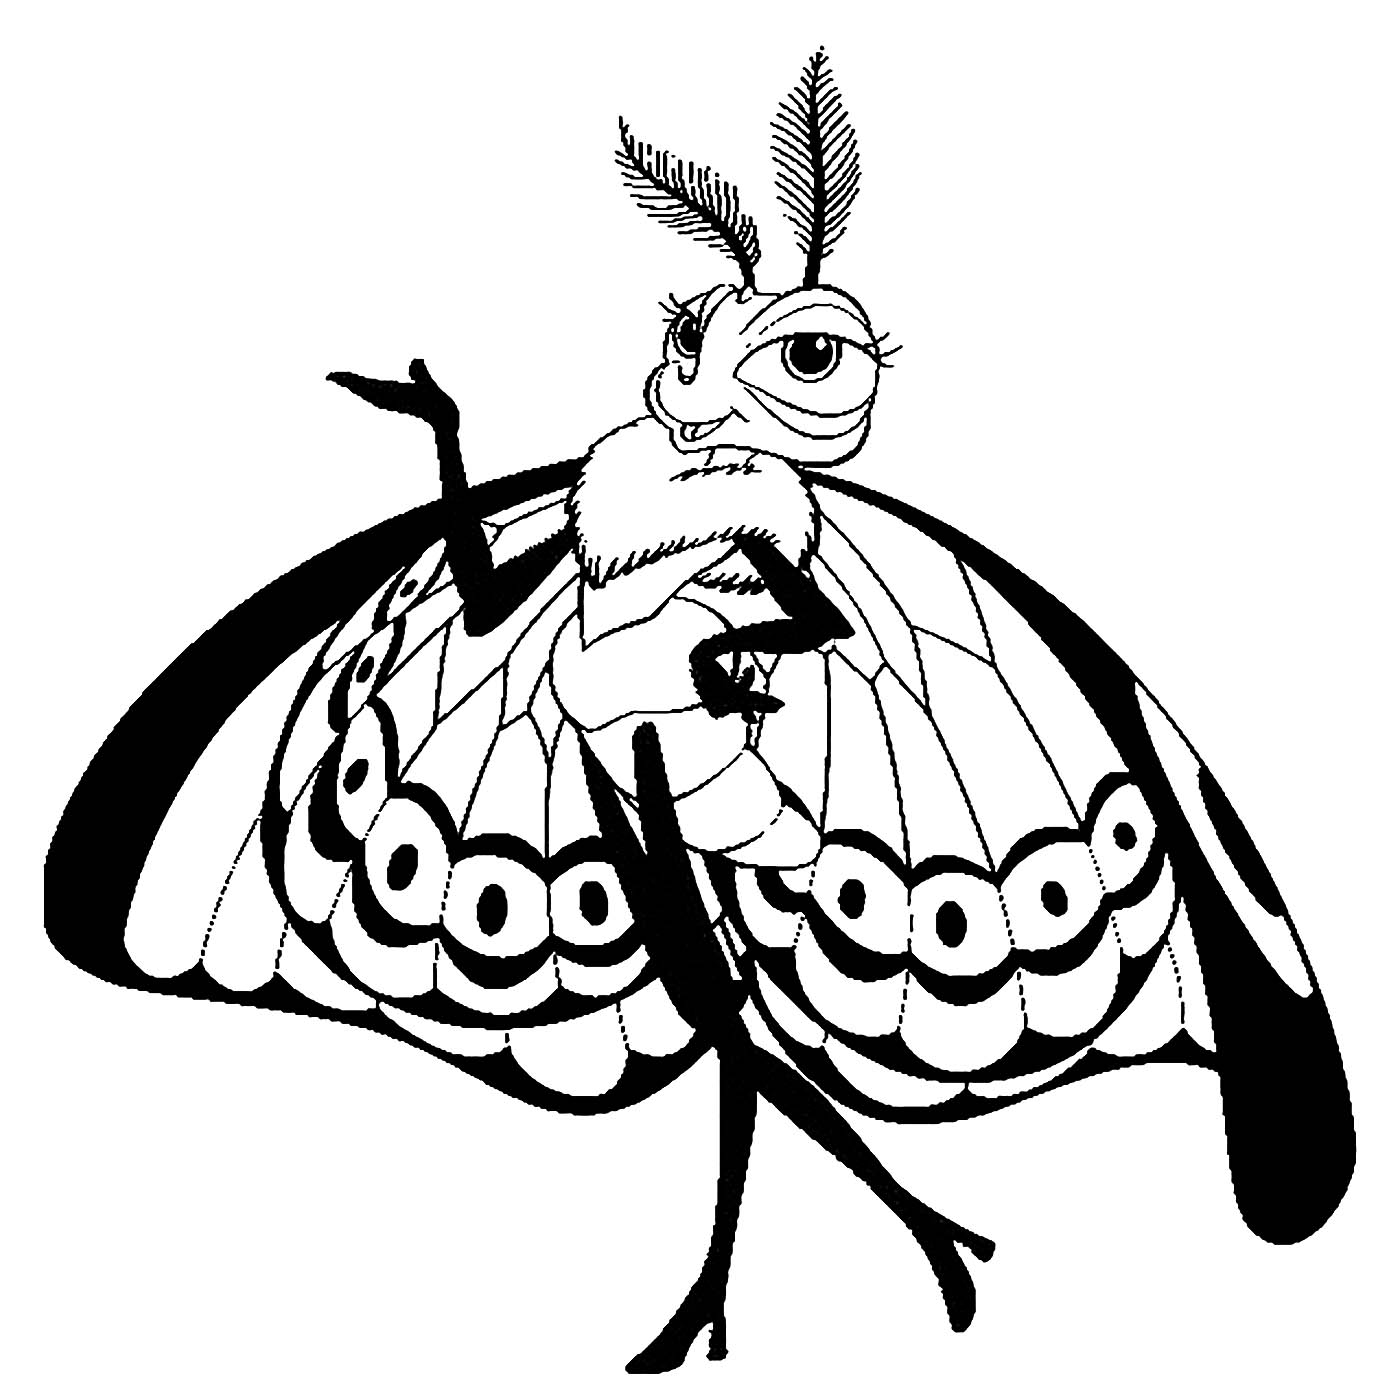 Simple A Bugs Life coloring page to print and color for free